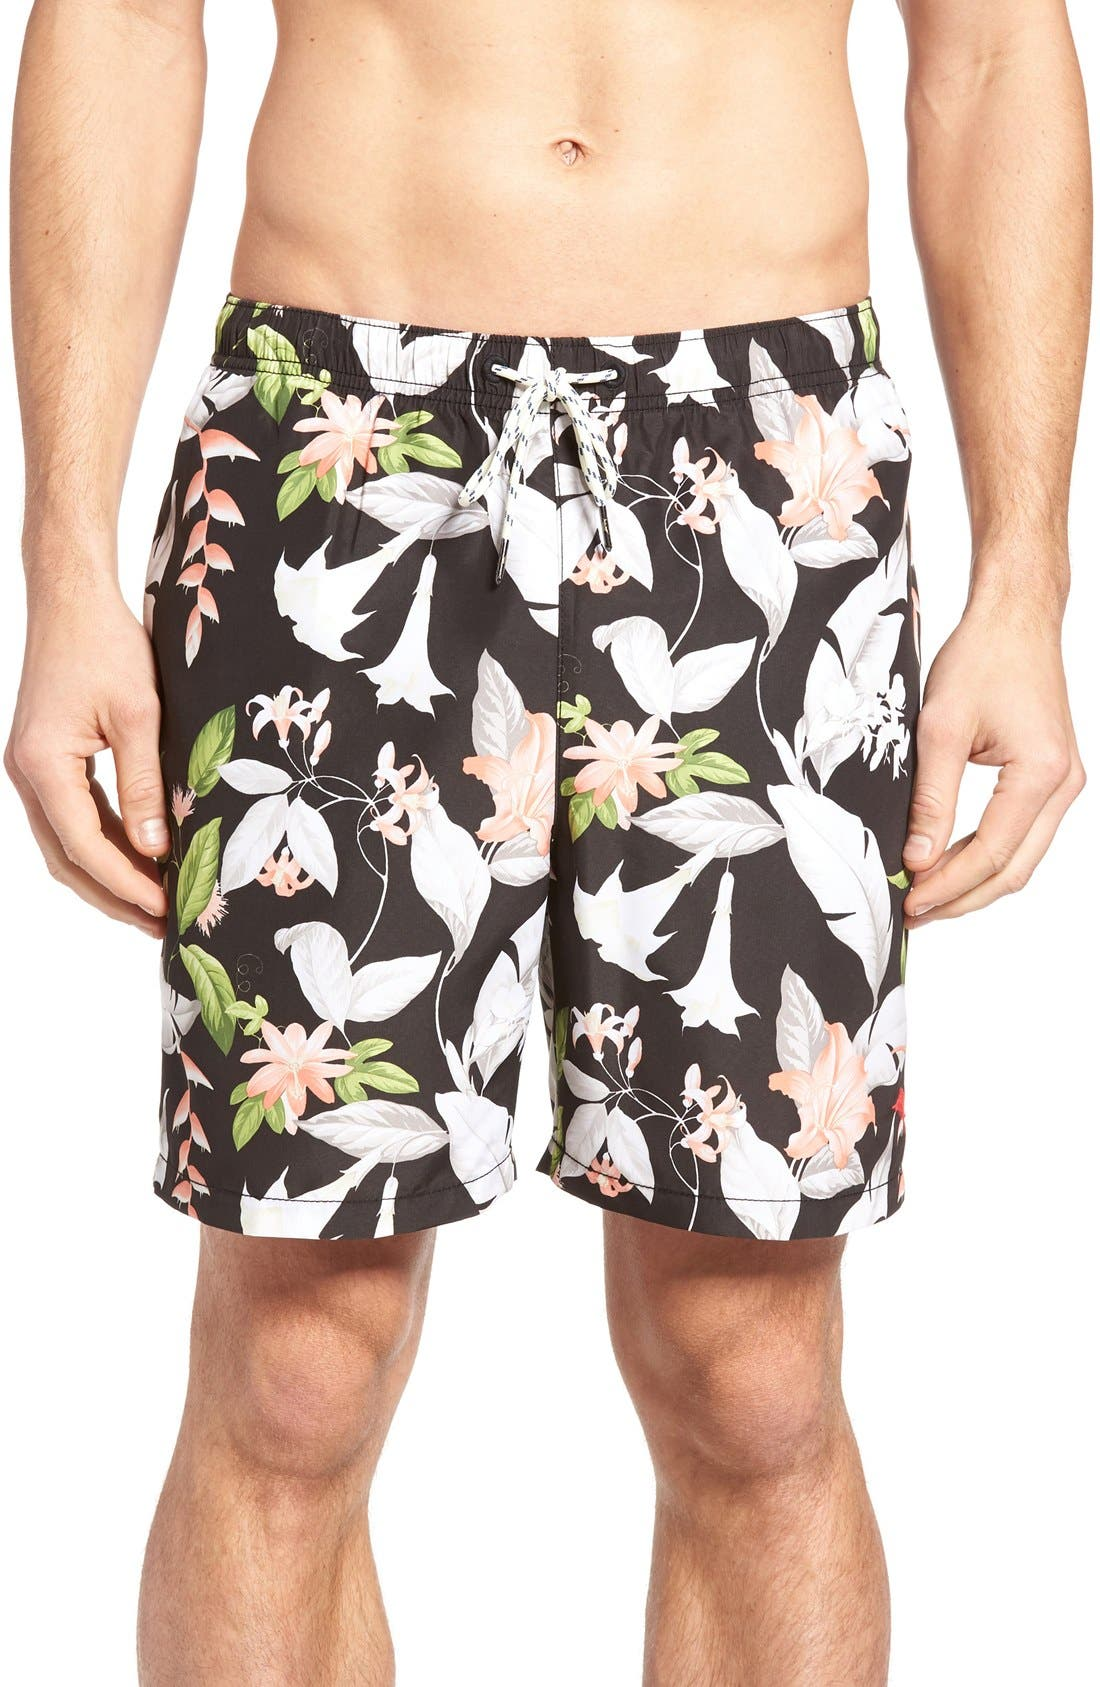 Naples Brego Blooms Swim Trunks,                             Main thumbnail 1, color,                             001